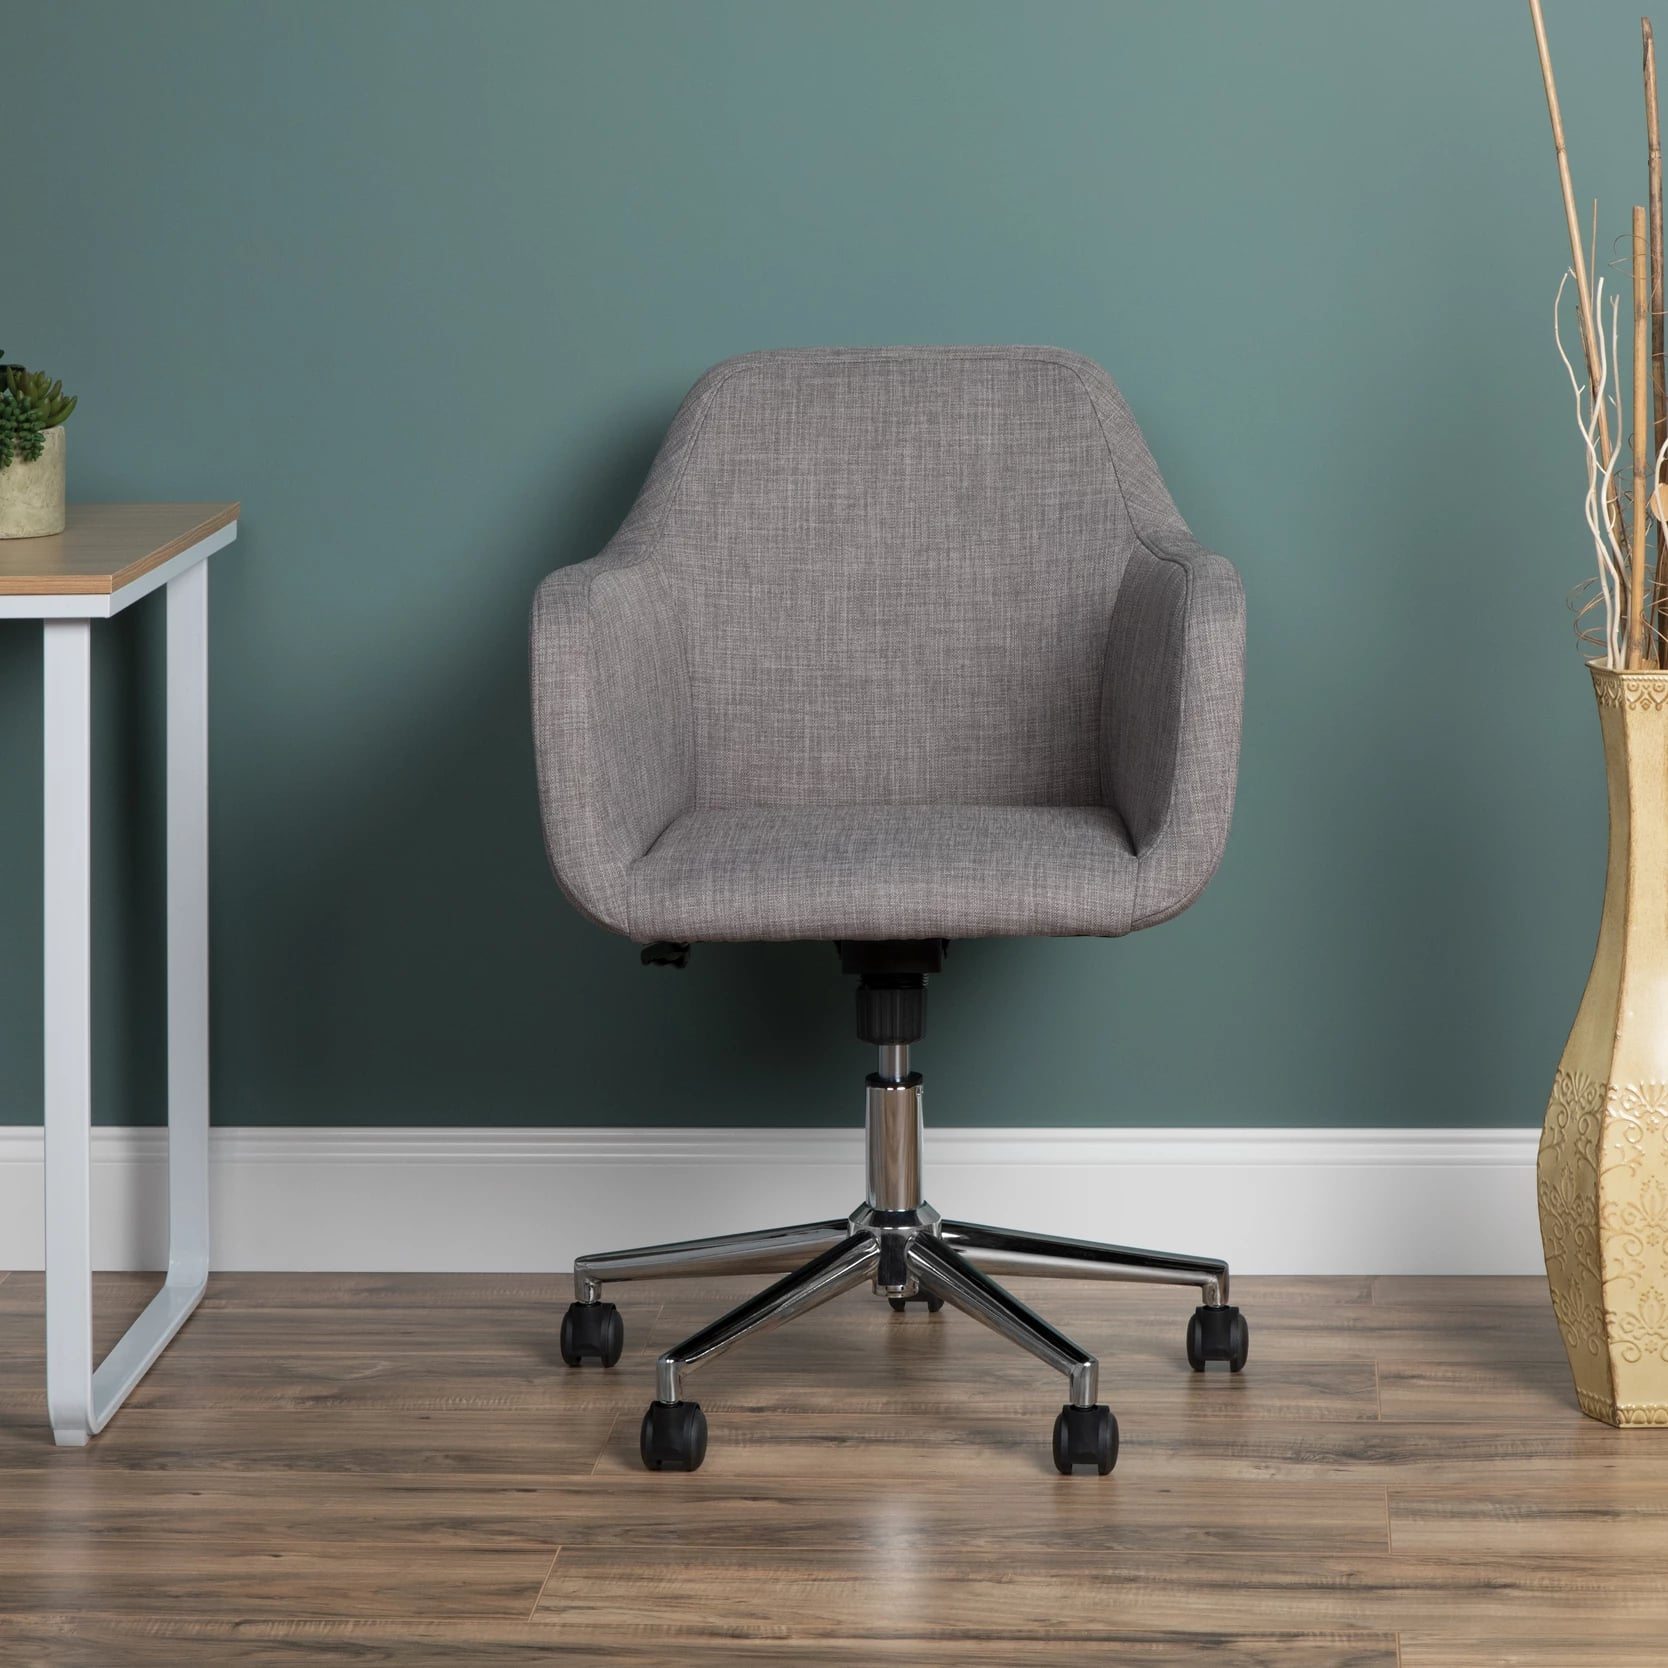 Upholstered Adjustable Home Office Chair With Wheels 30 Cute And Useful Products That Ll Make At Home Learning Easier And More Organized Popsugar Family Photo 21